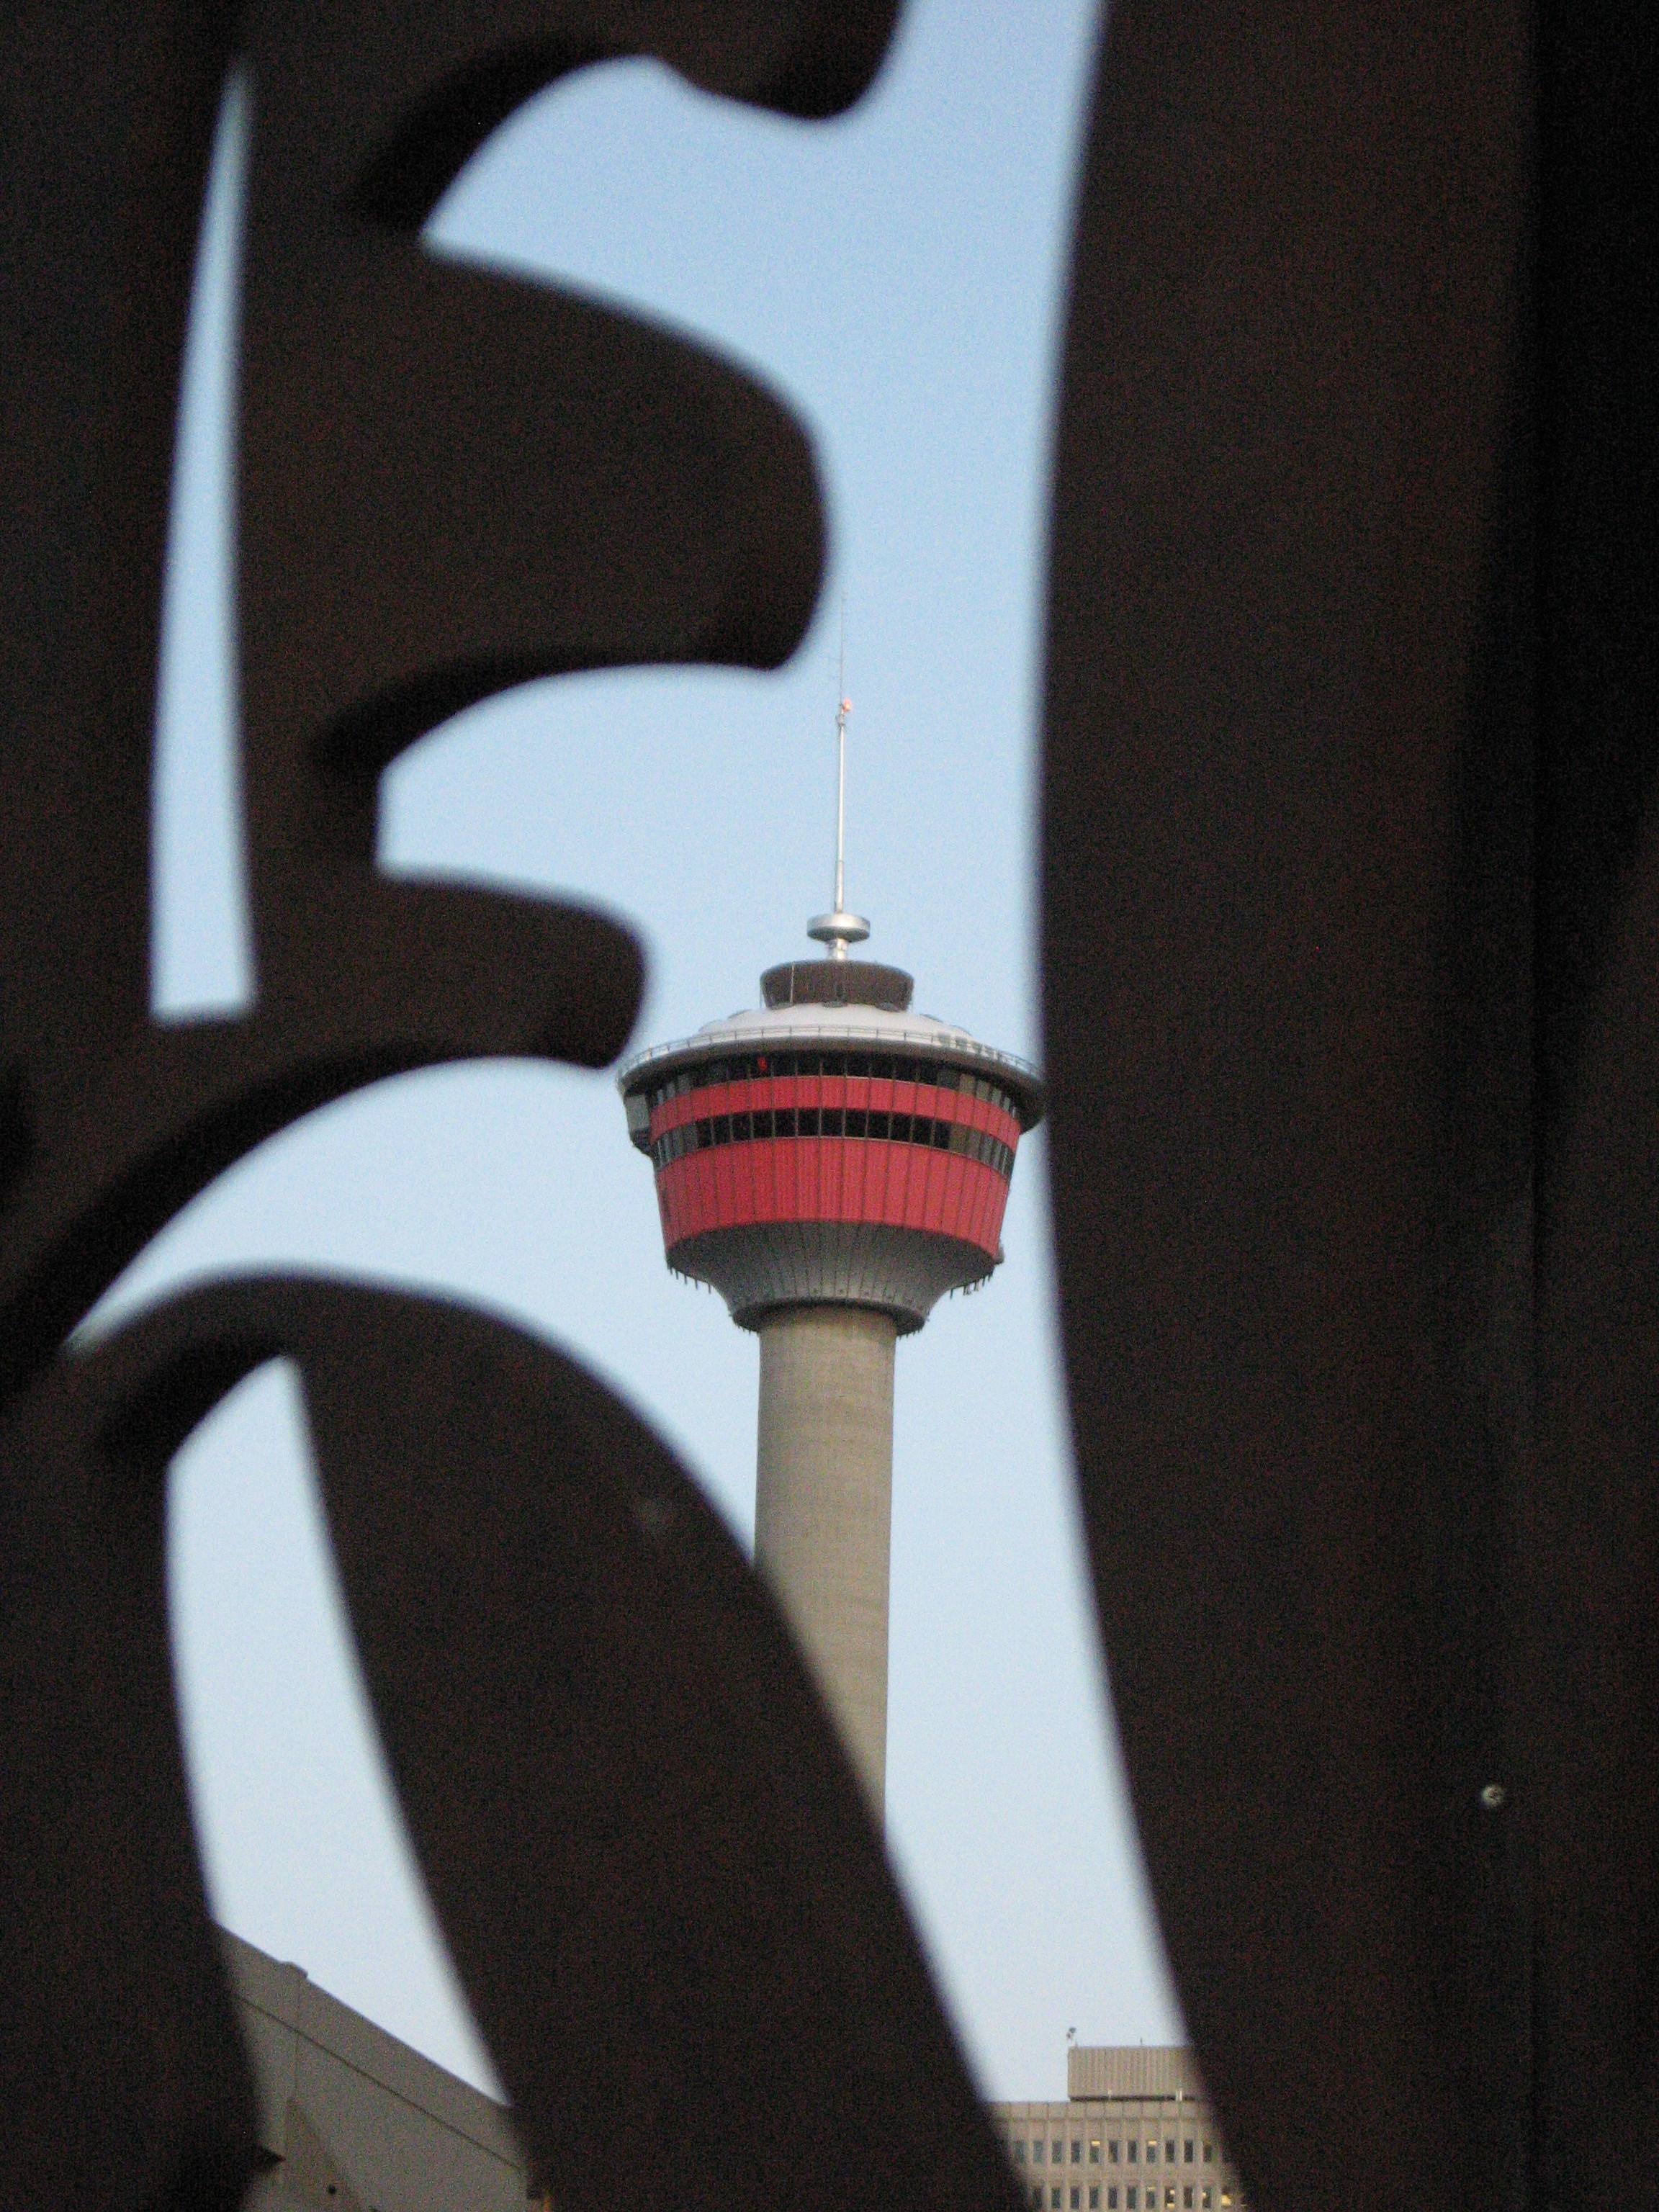 This is an image of the Calgary Tower that I happened upon when flaneuring 10th Avenue several years ago.